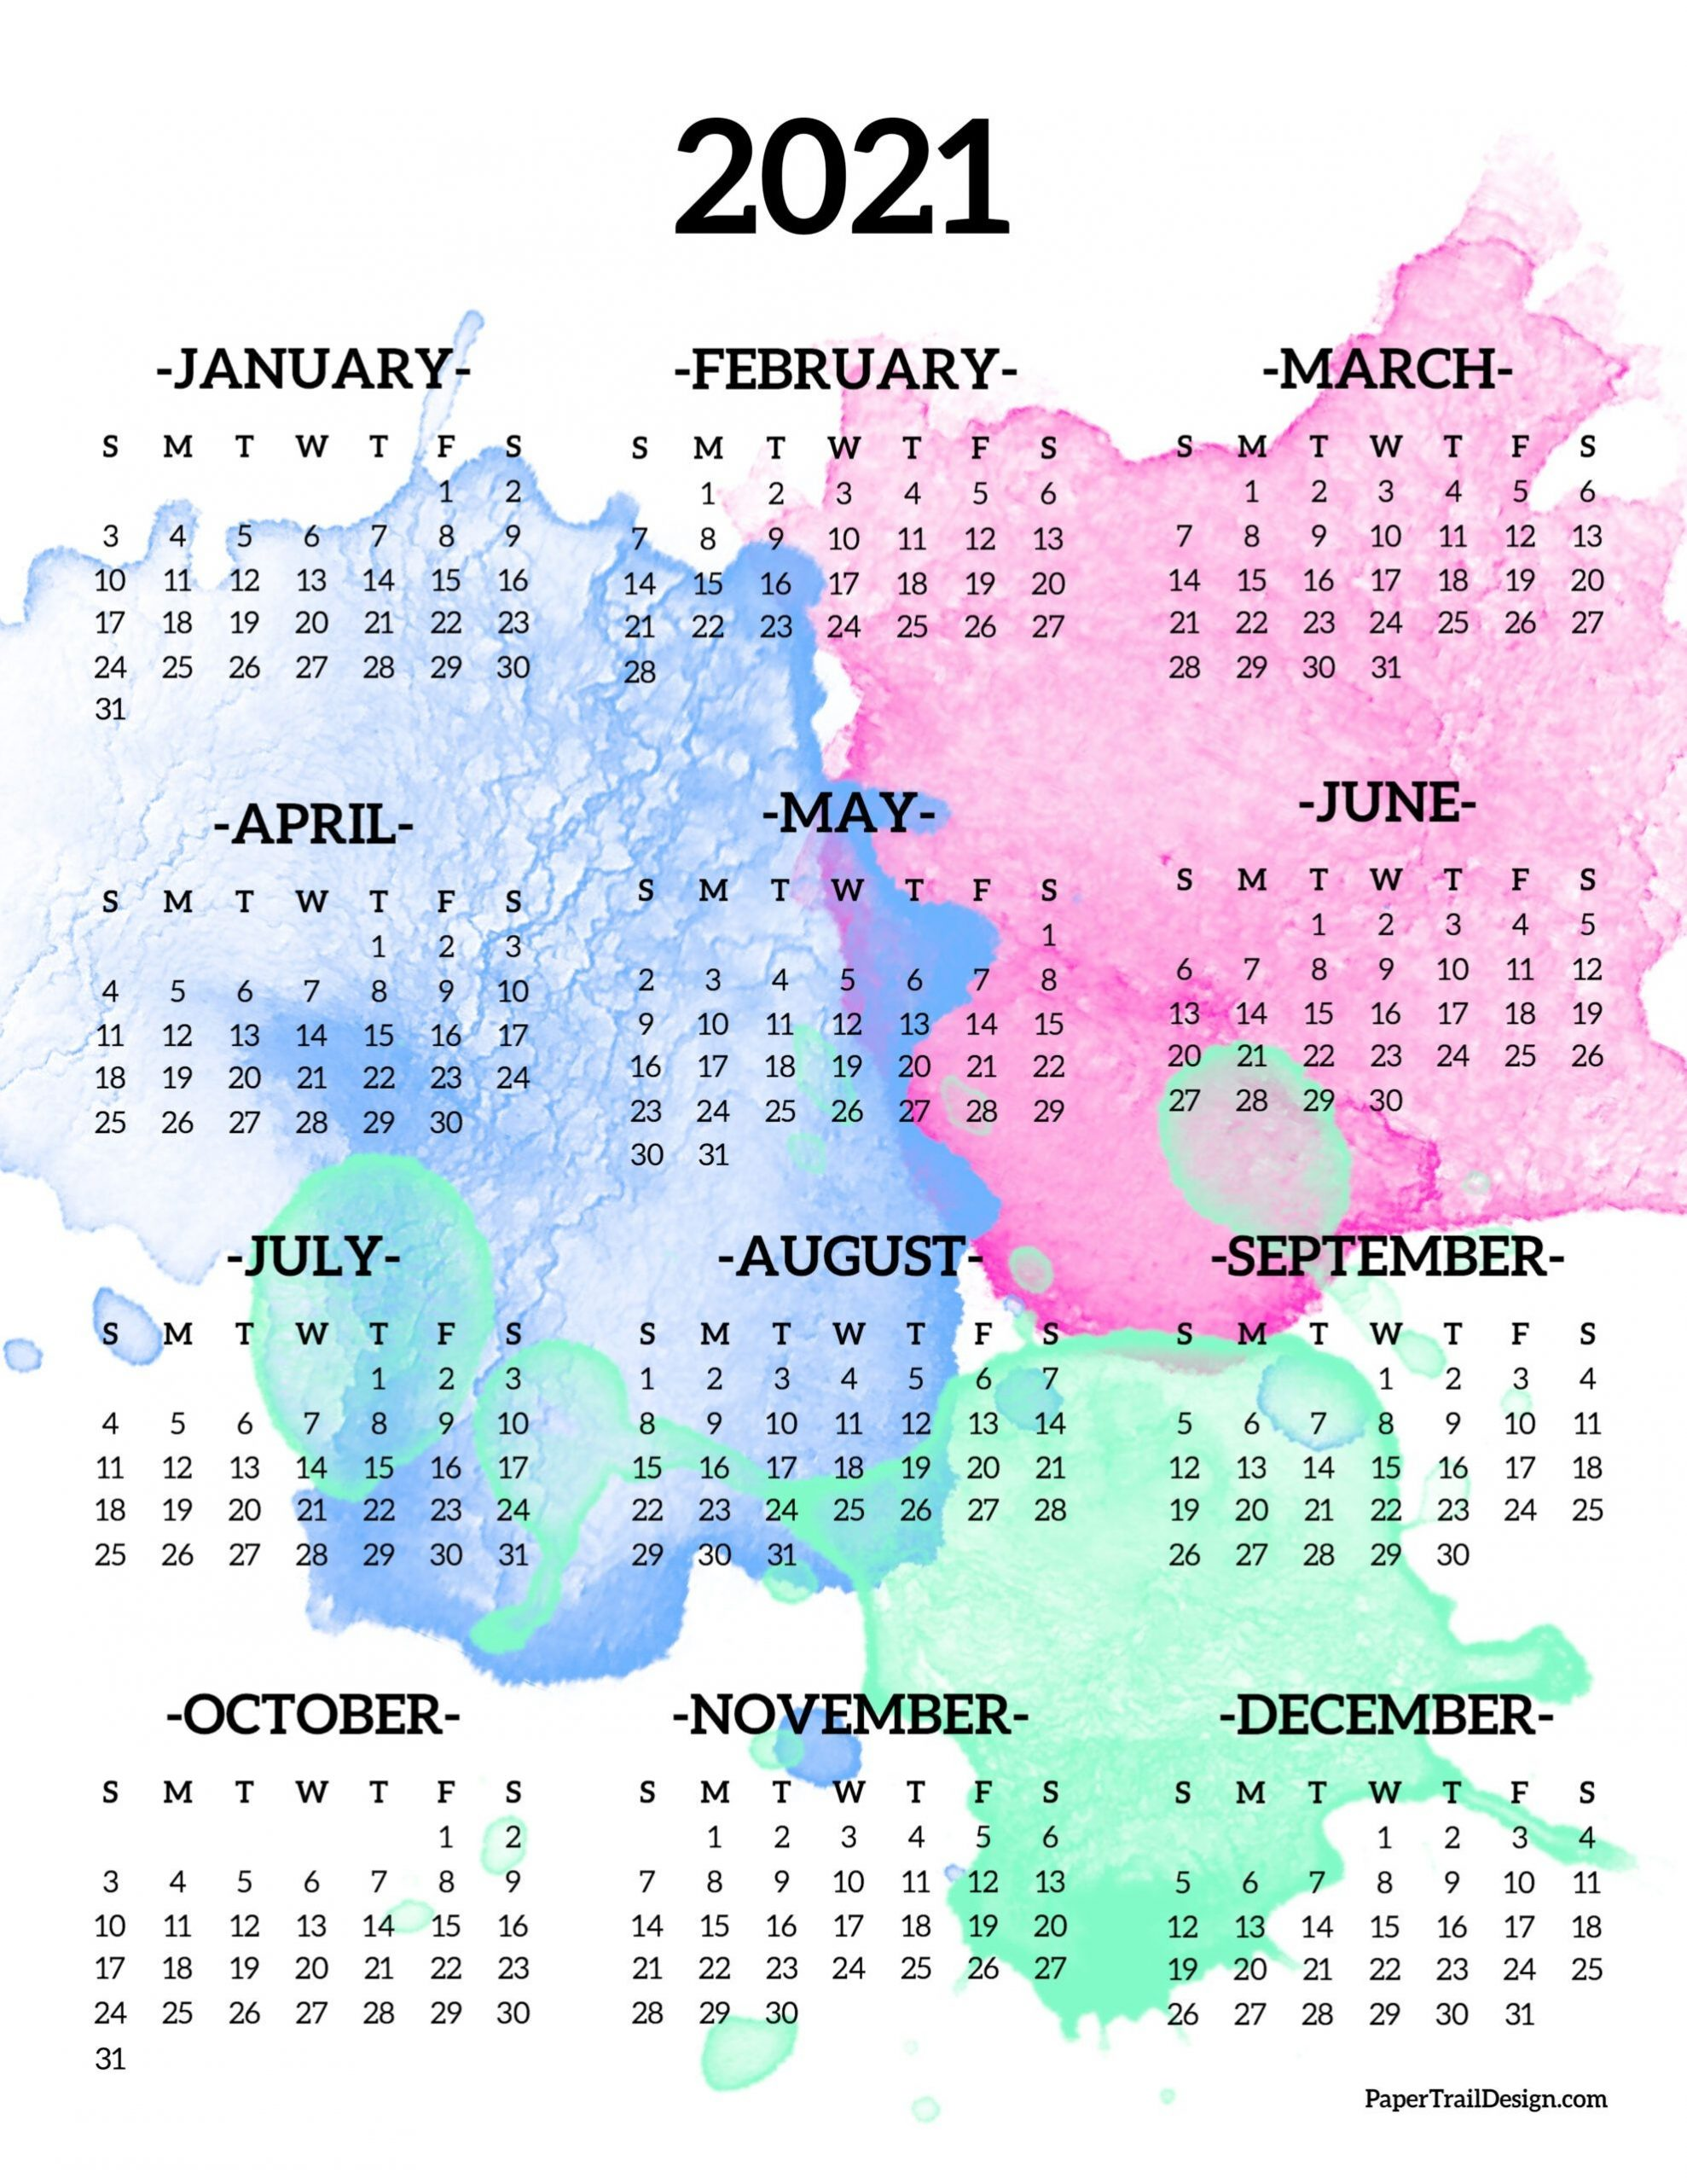 04/09/2021· below are year 2021 printable calendars you're welcome to download and print. 2021 Year At A Glance Free - Example Calendar Printable